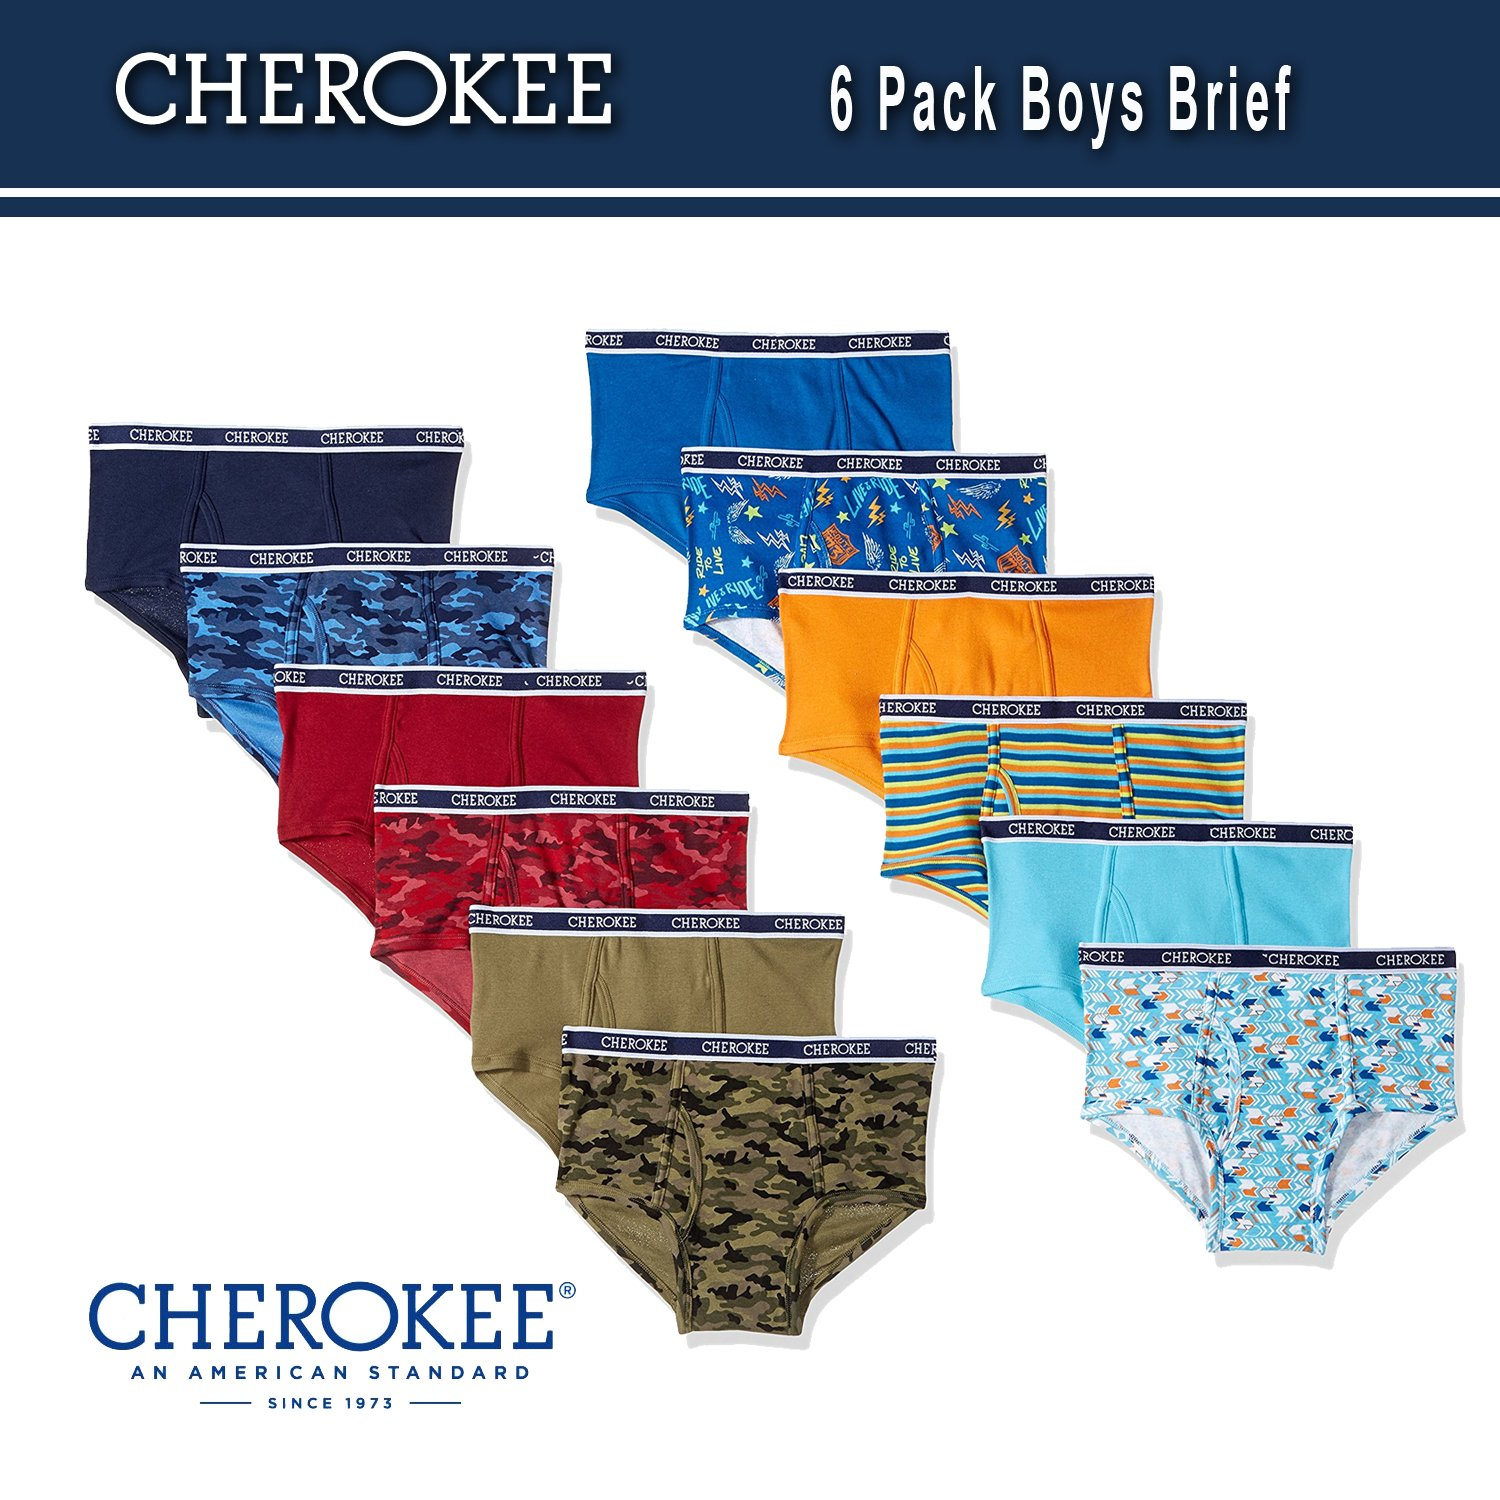 Cherokee Little Boys 6 Pack Brief, Camo/Solid Print Pack, XL by Cherokee (Image #2)